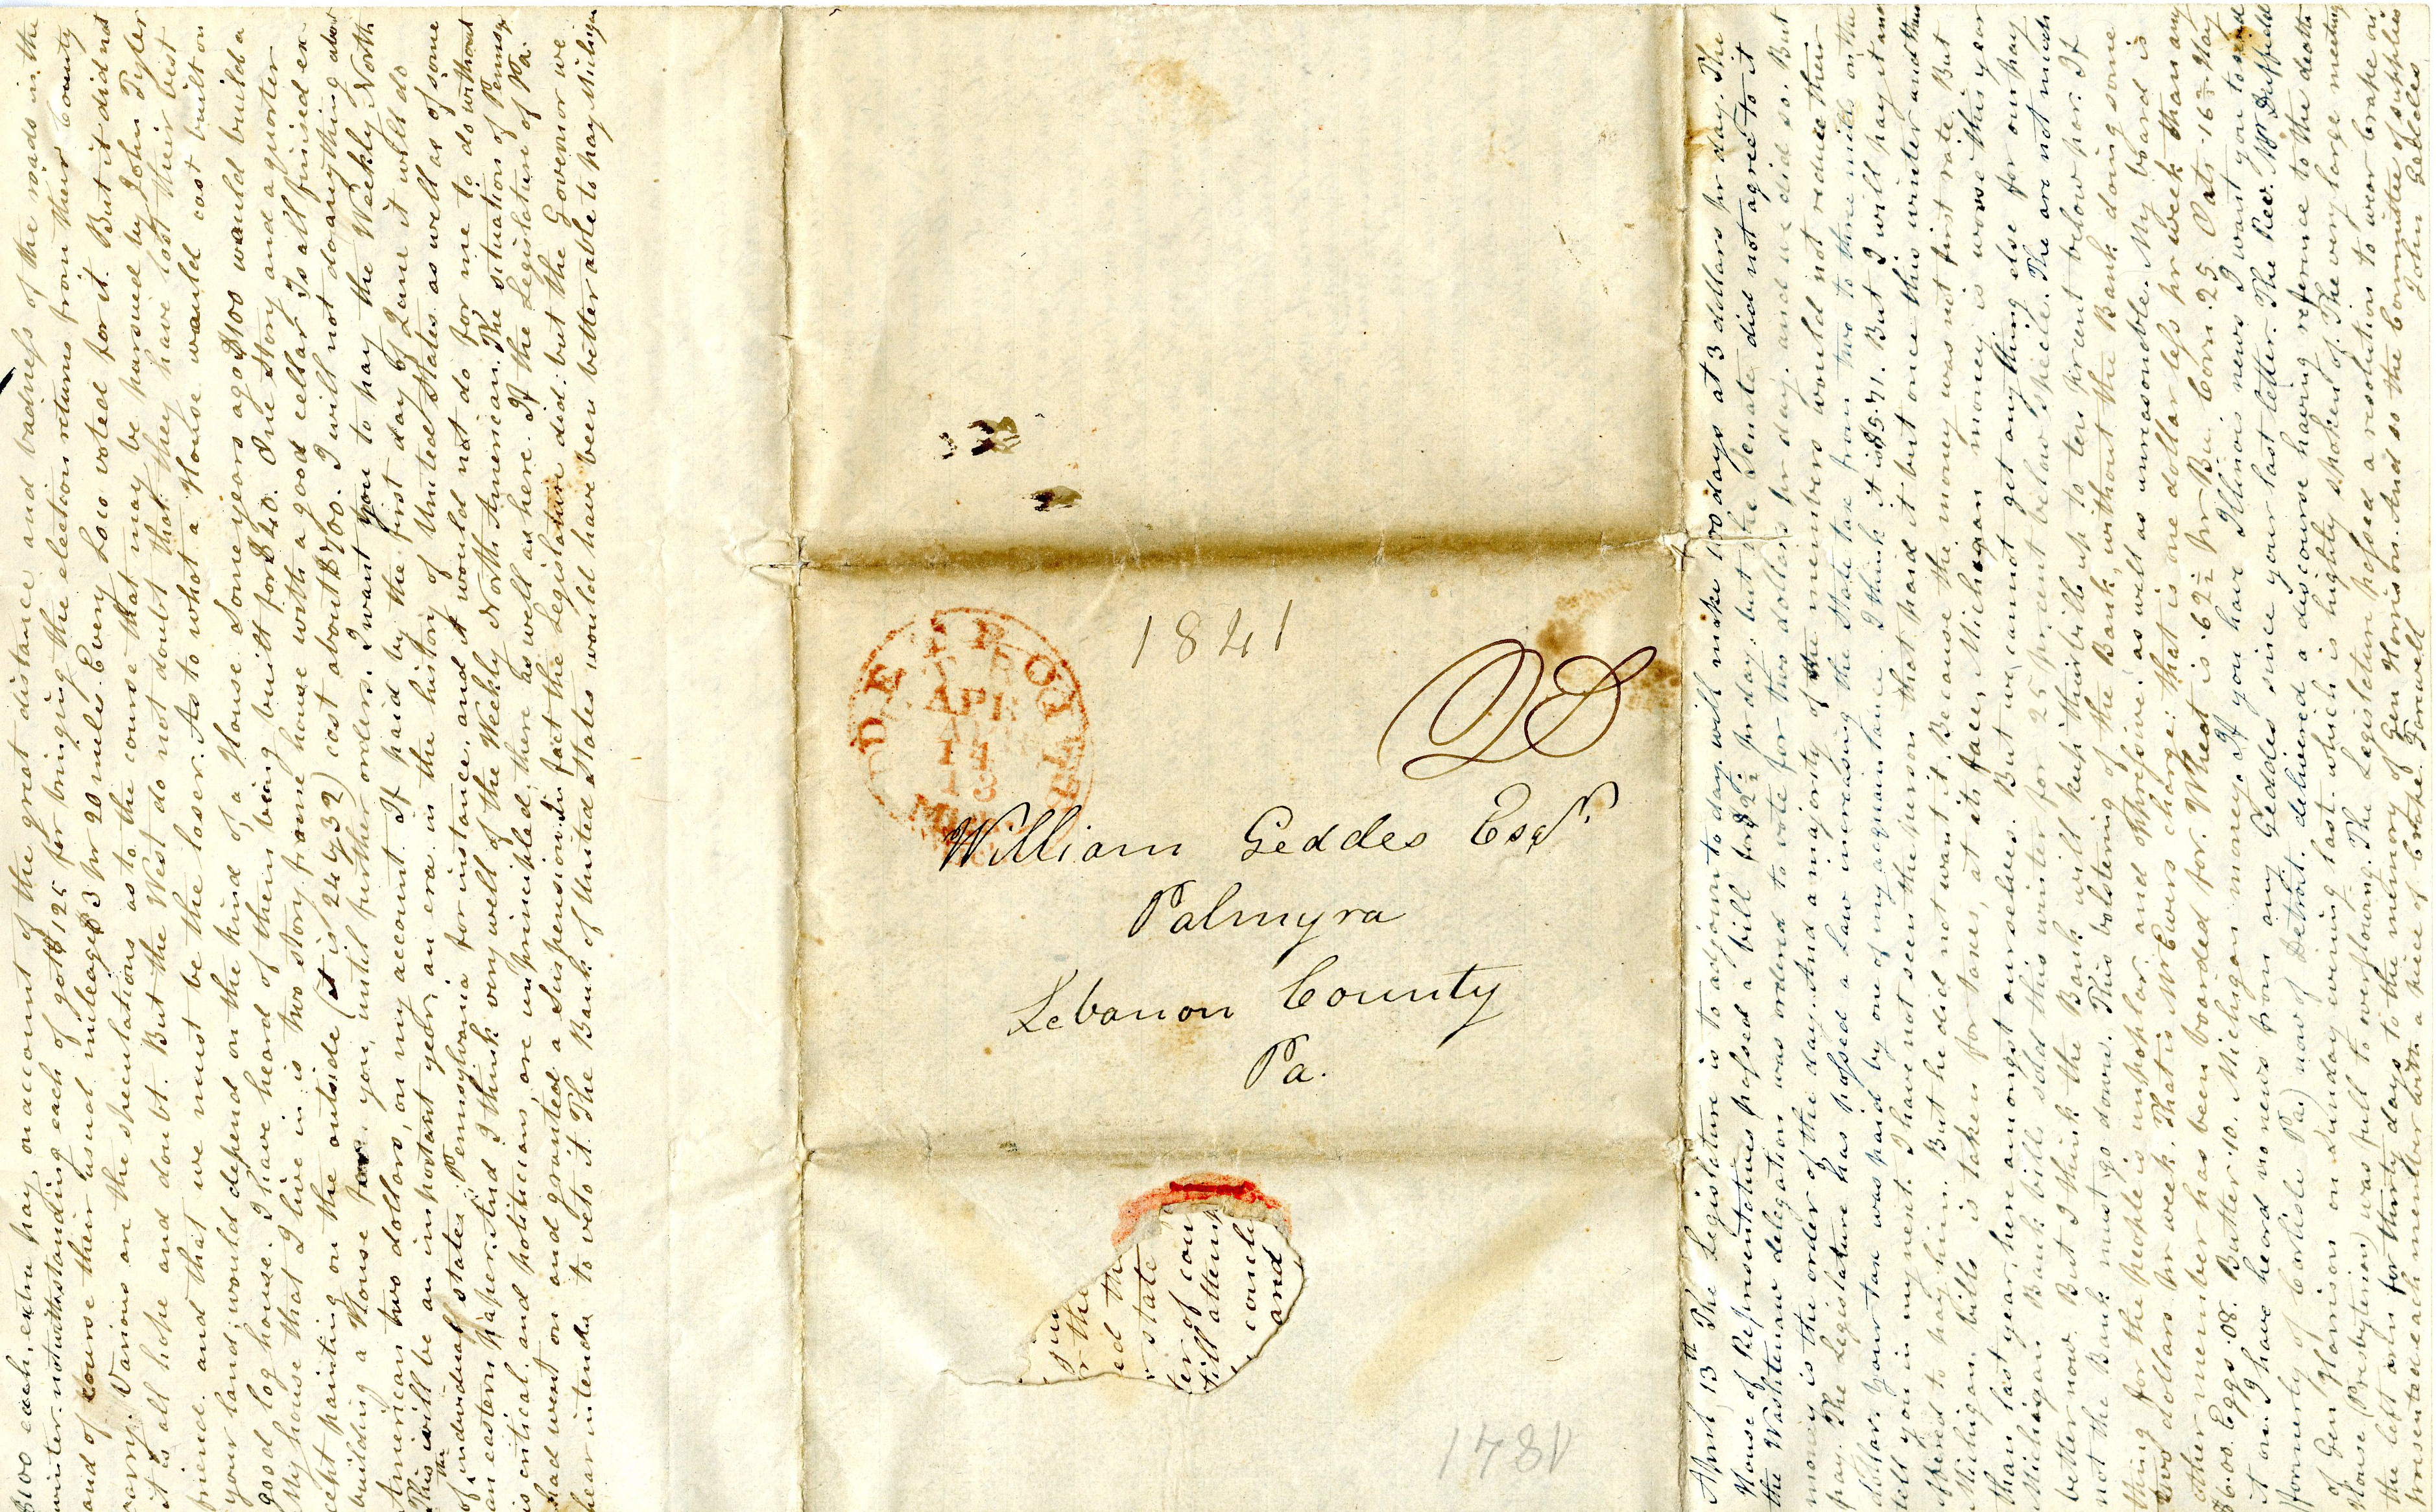 Letter From John Geddes to William Geddes, April 14, 1841 image